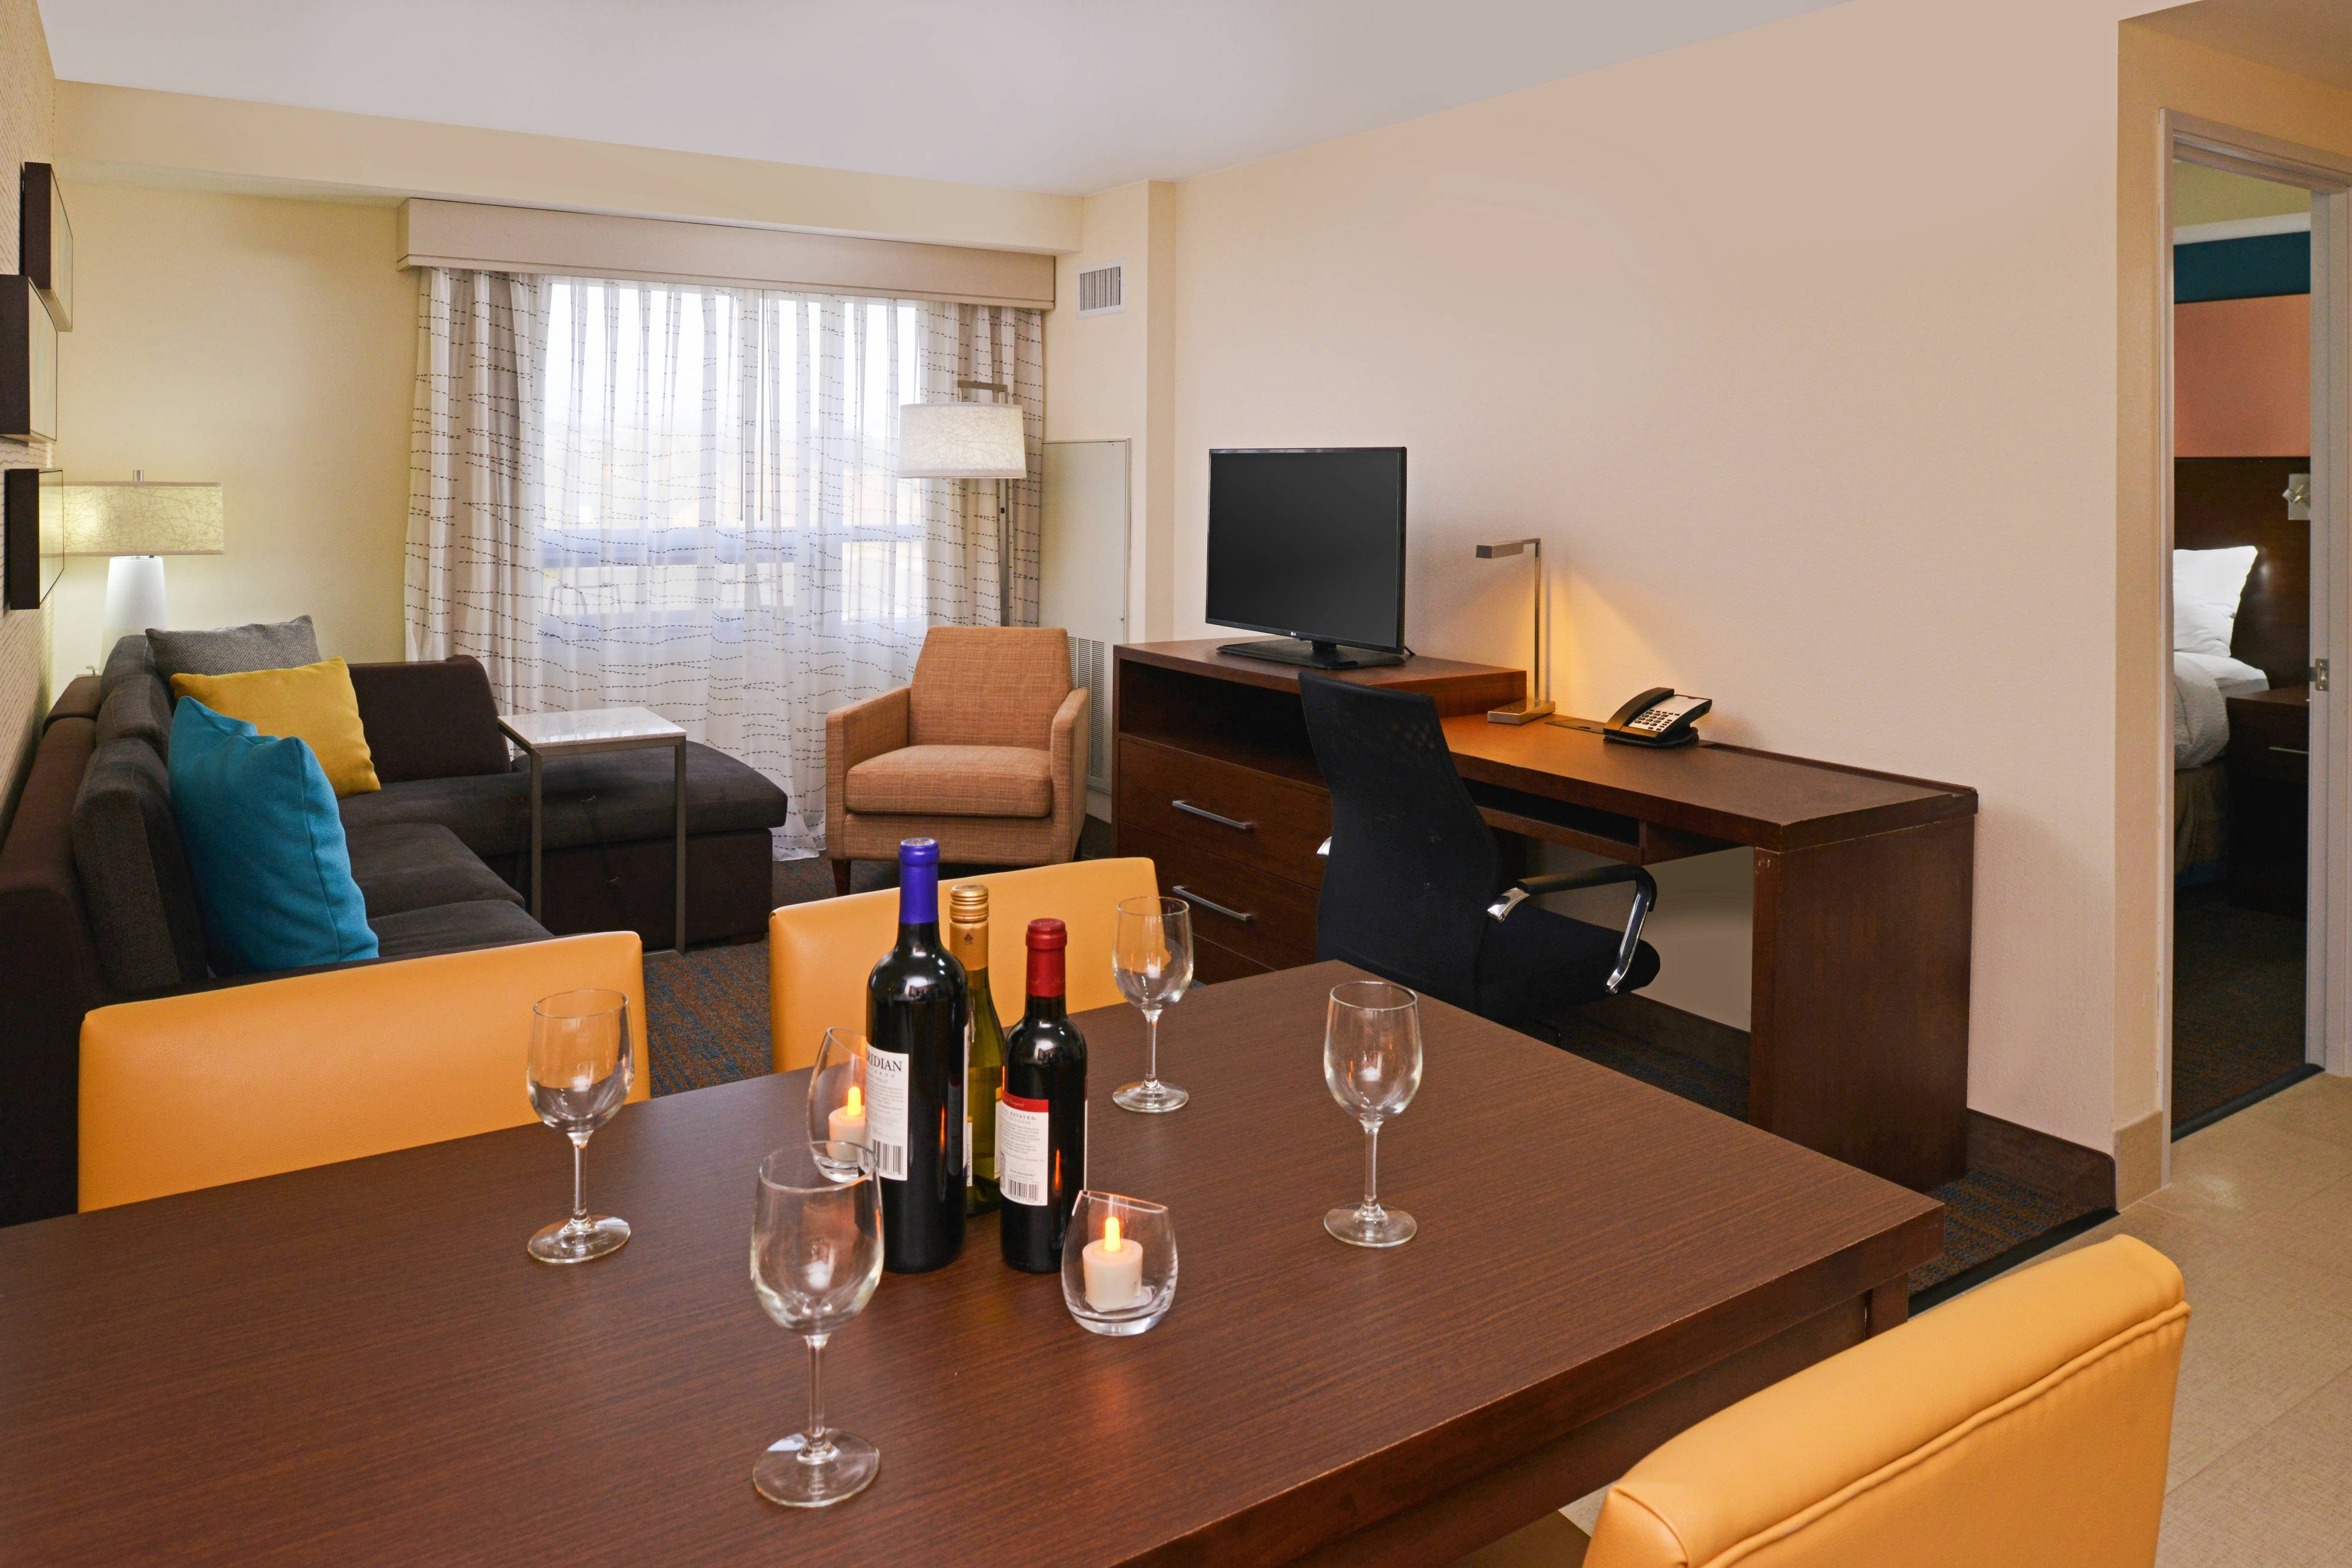 Living Spaces Murrieta : Pictures of hotels in or near Murrieta  Take a photo tour ...